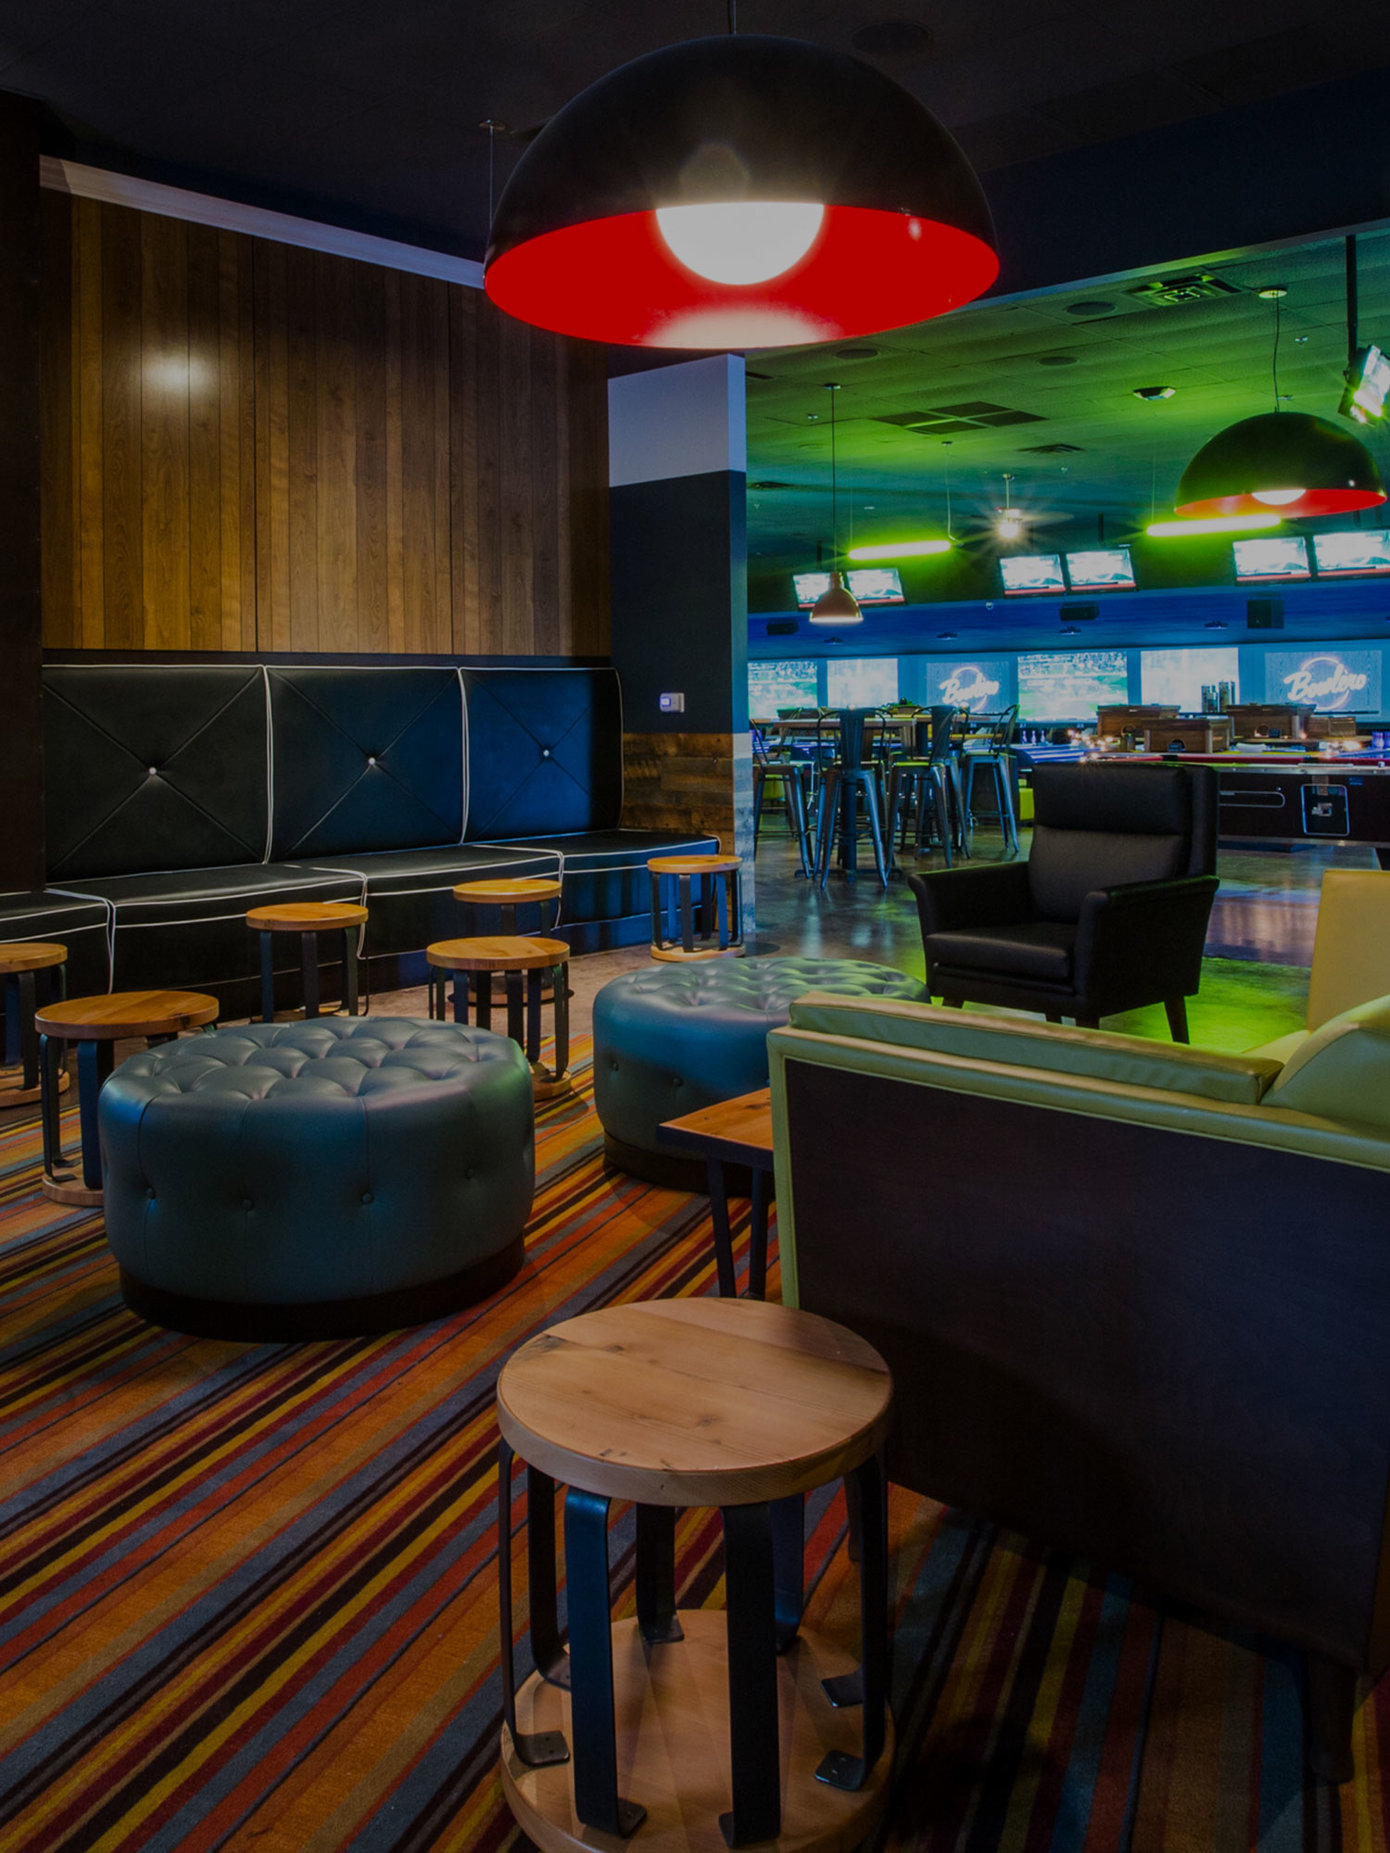 Bowling Alley Lounge Area In The Woodlands Tx Bowlero